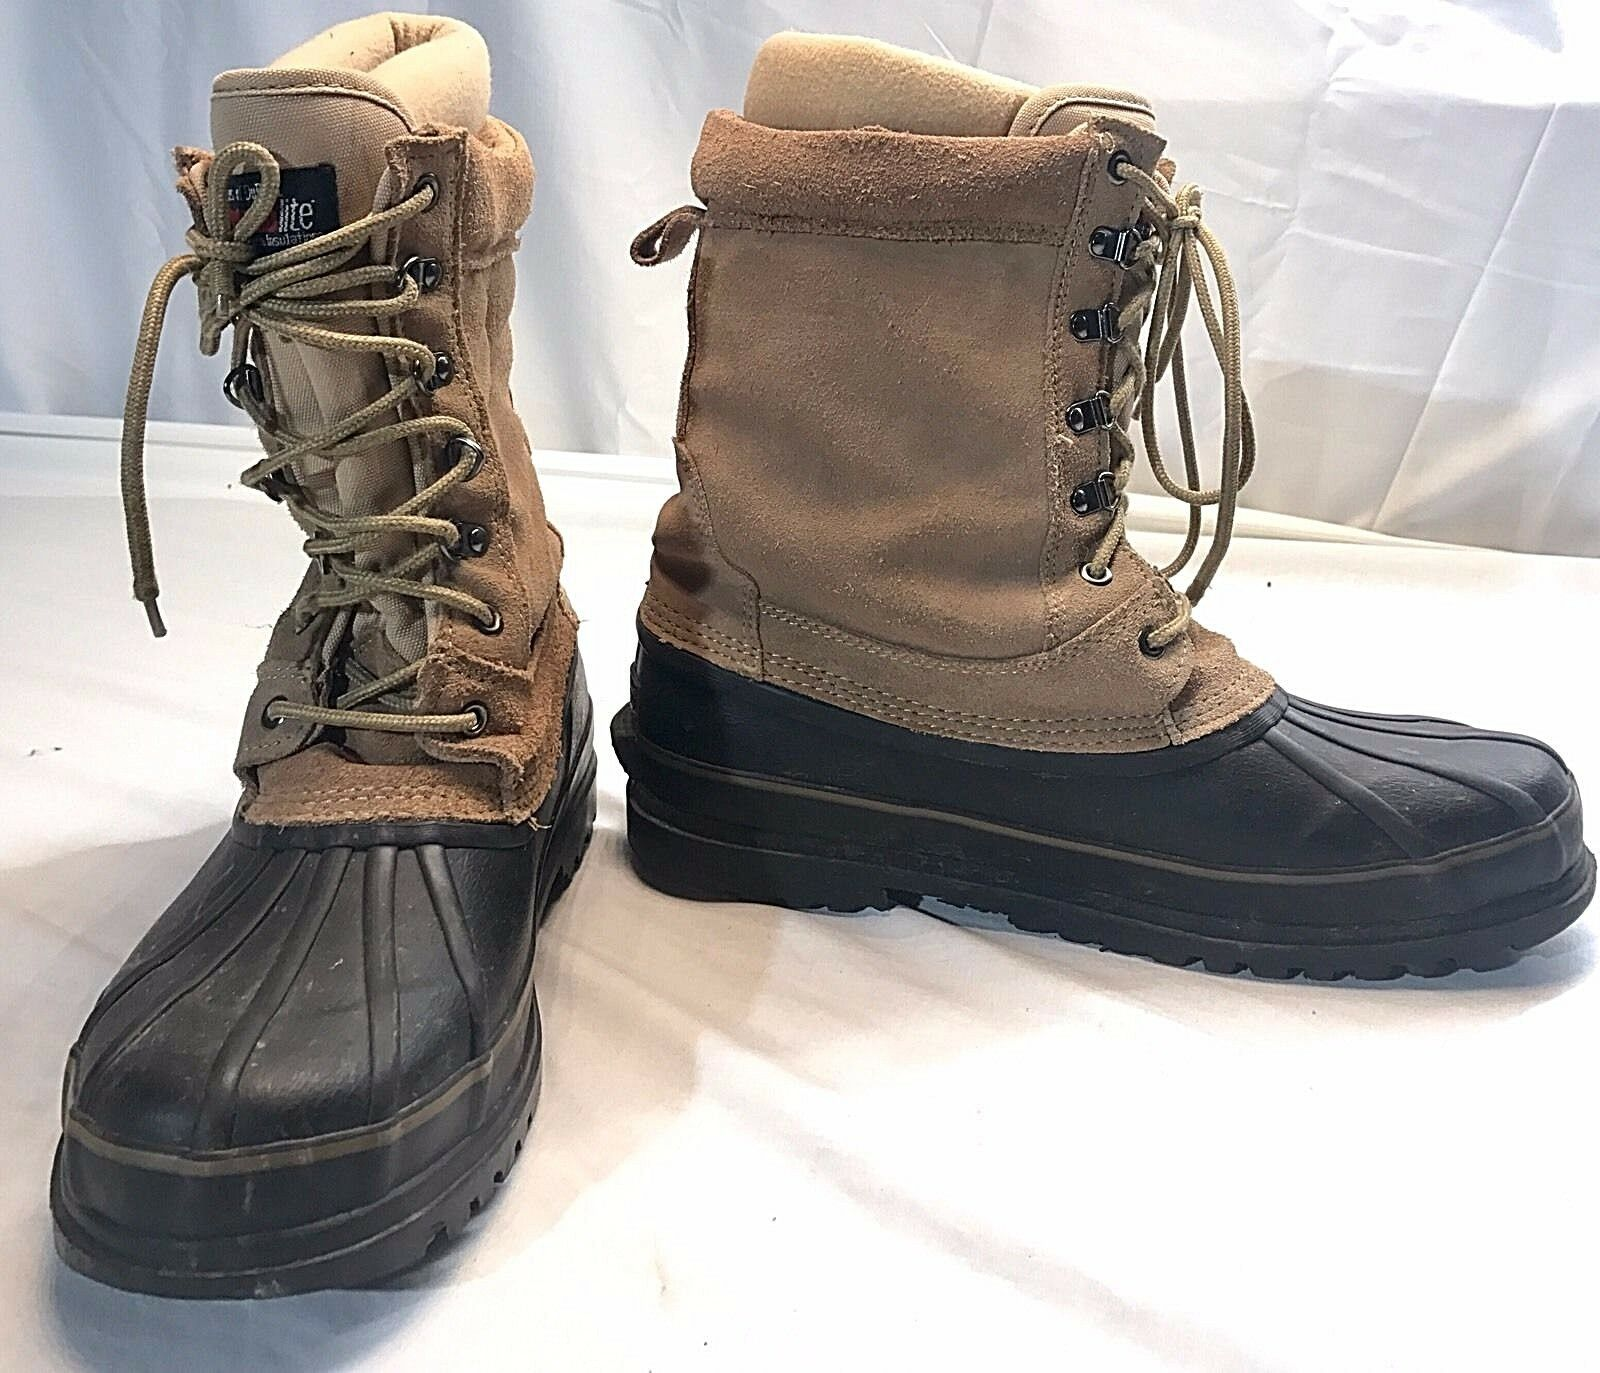 Xtreme Sports Power Thermolite Insulated Work Boots Steel Shank Men's Size 10